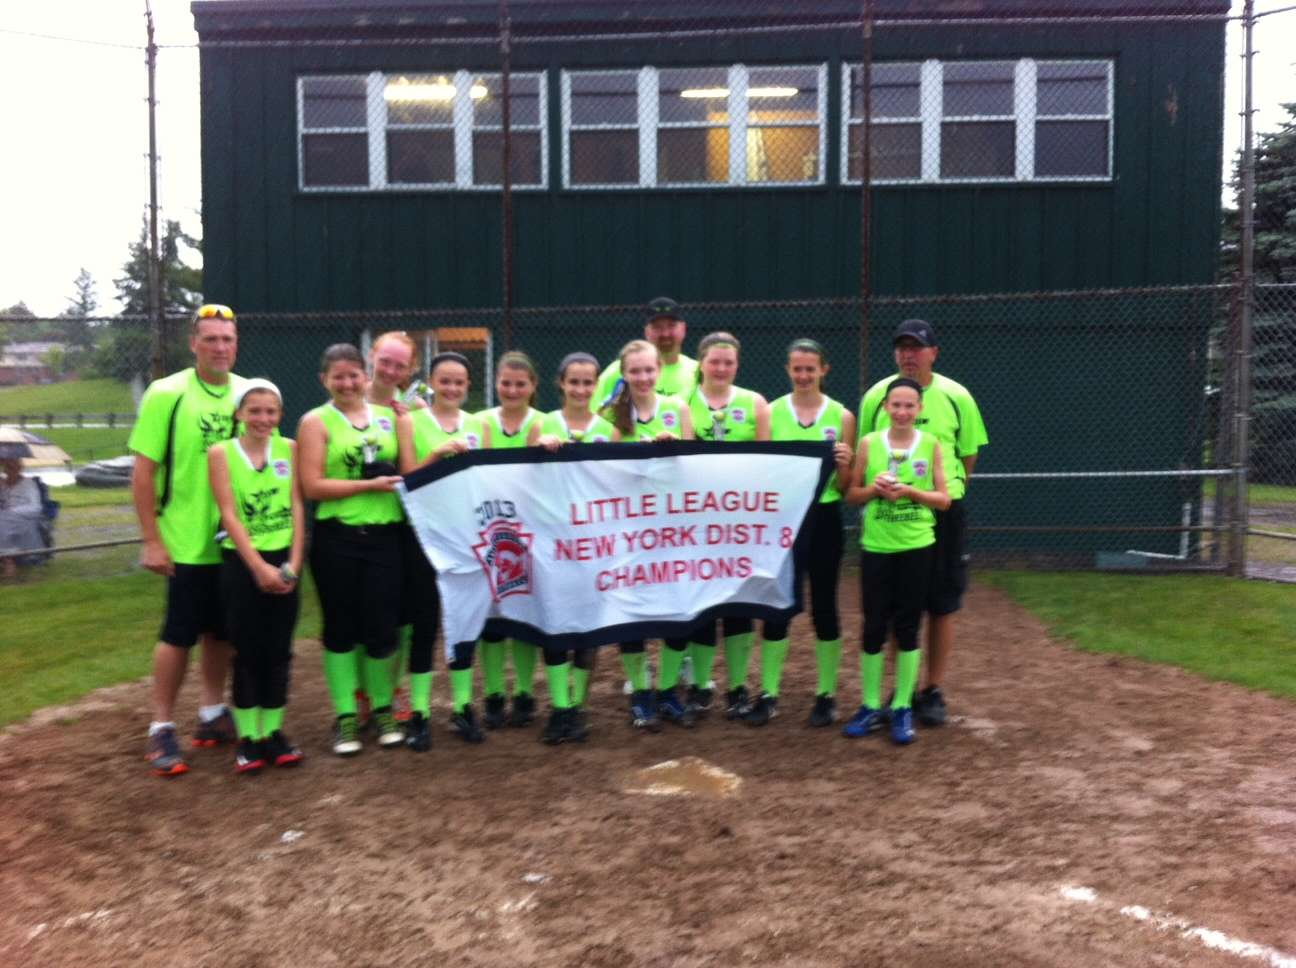 2013 D8 Majors SB All Star Champs